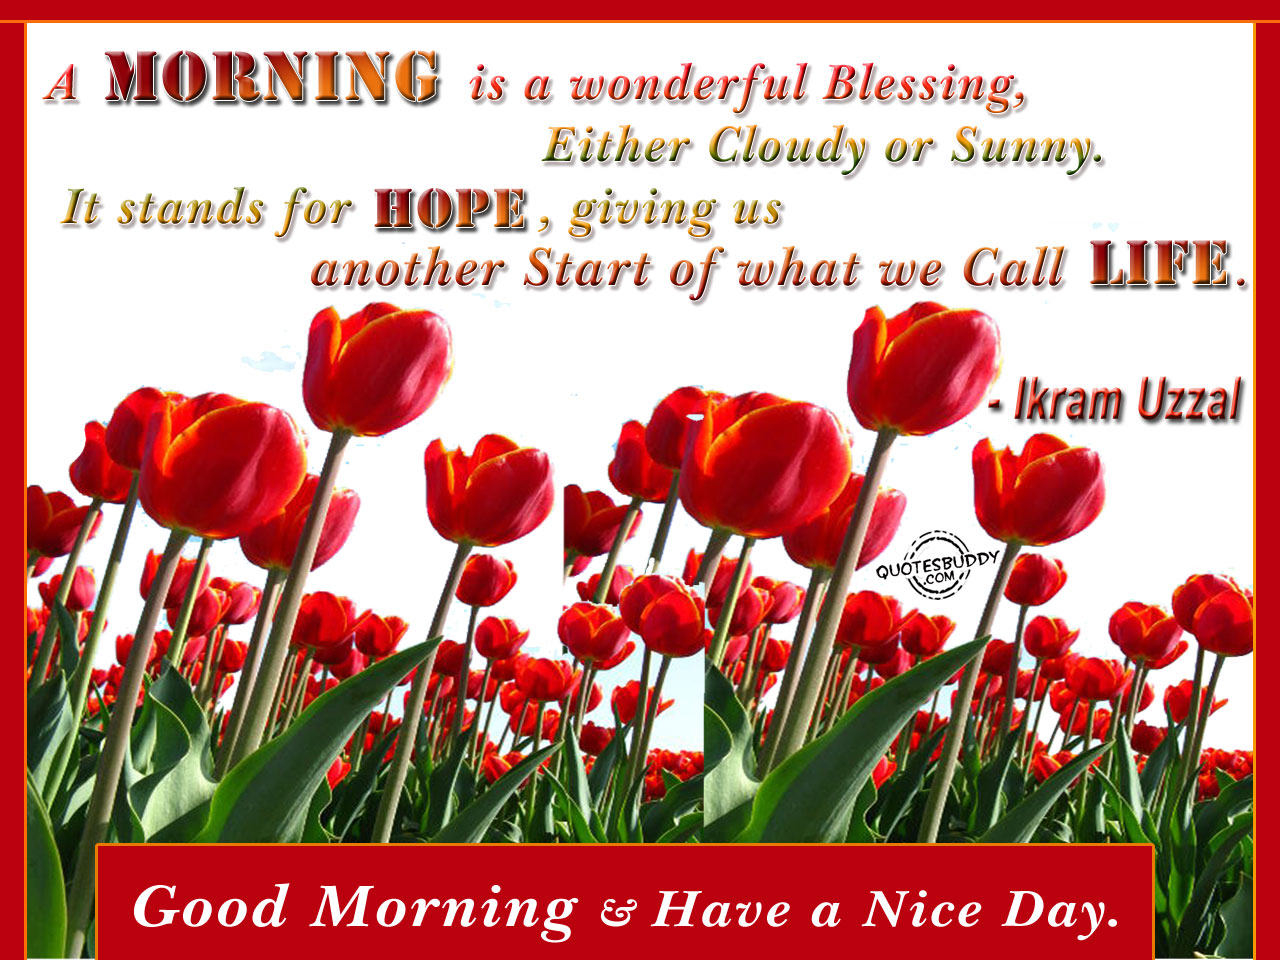 Good Morning Sunday For Her : A morning is wonderful blessing pictures photos and